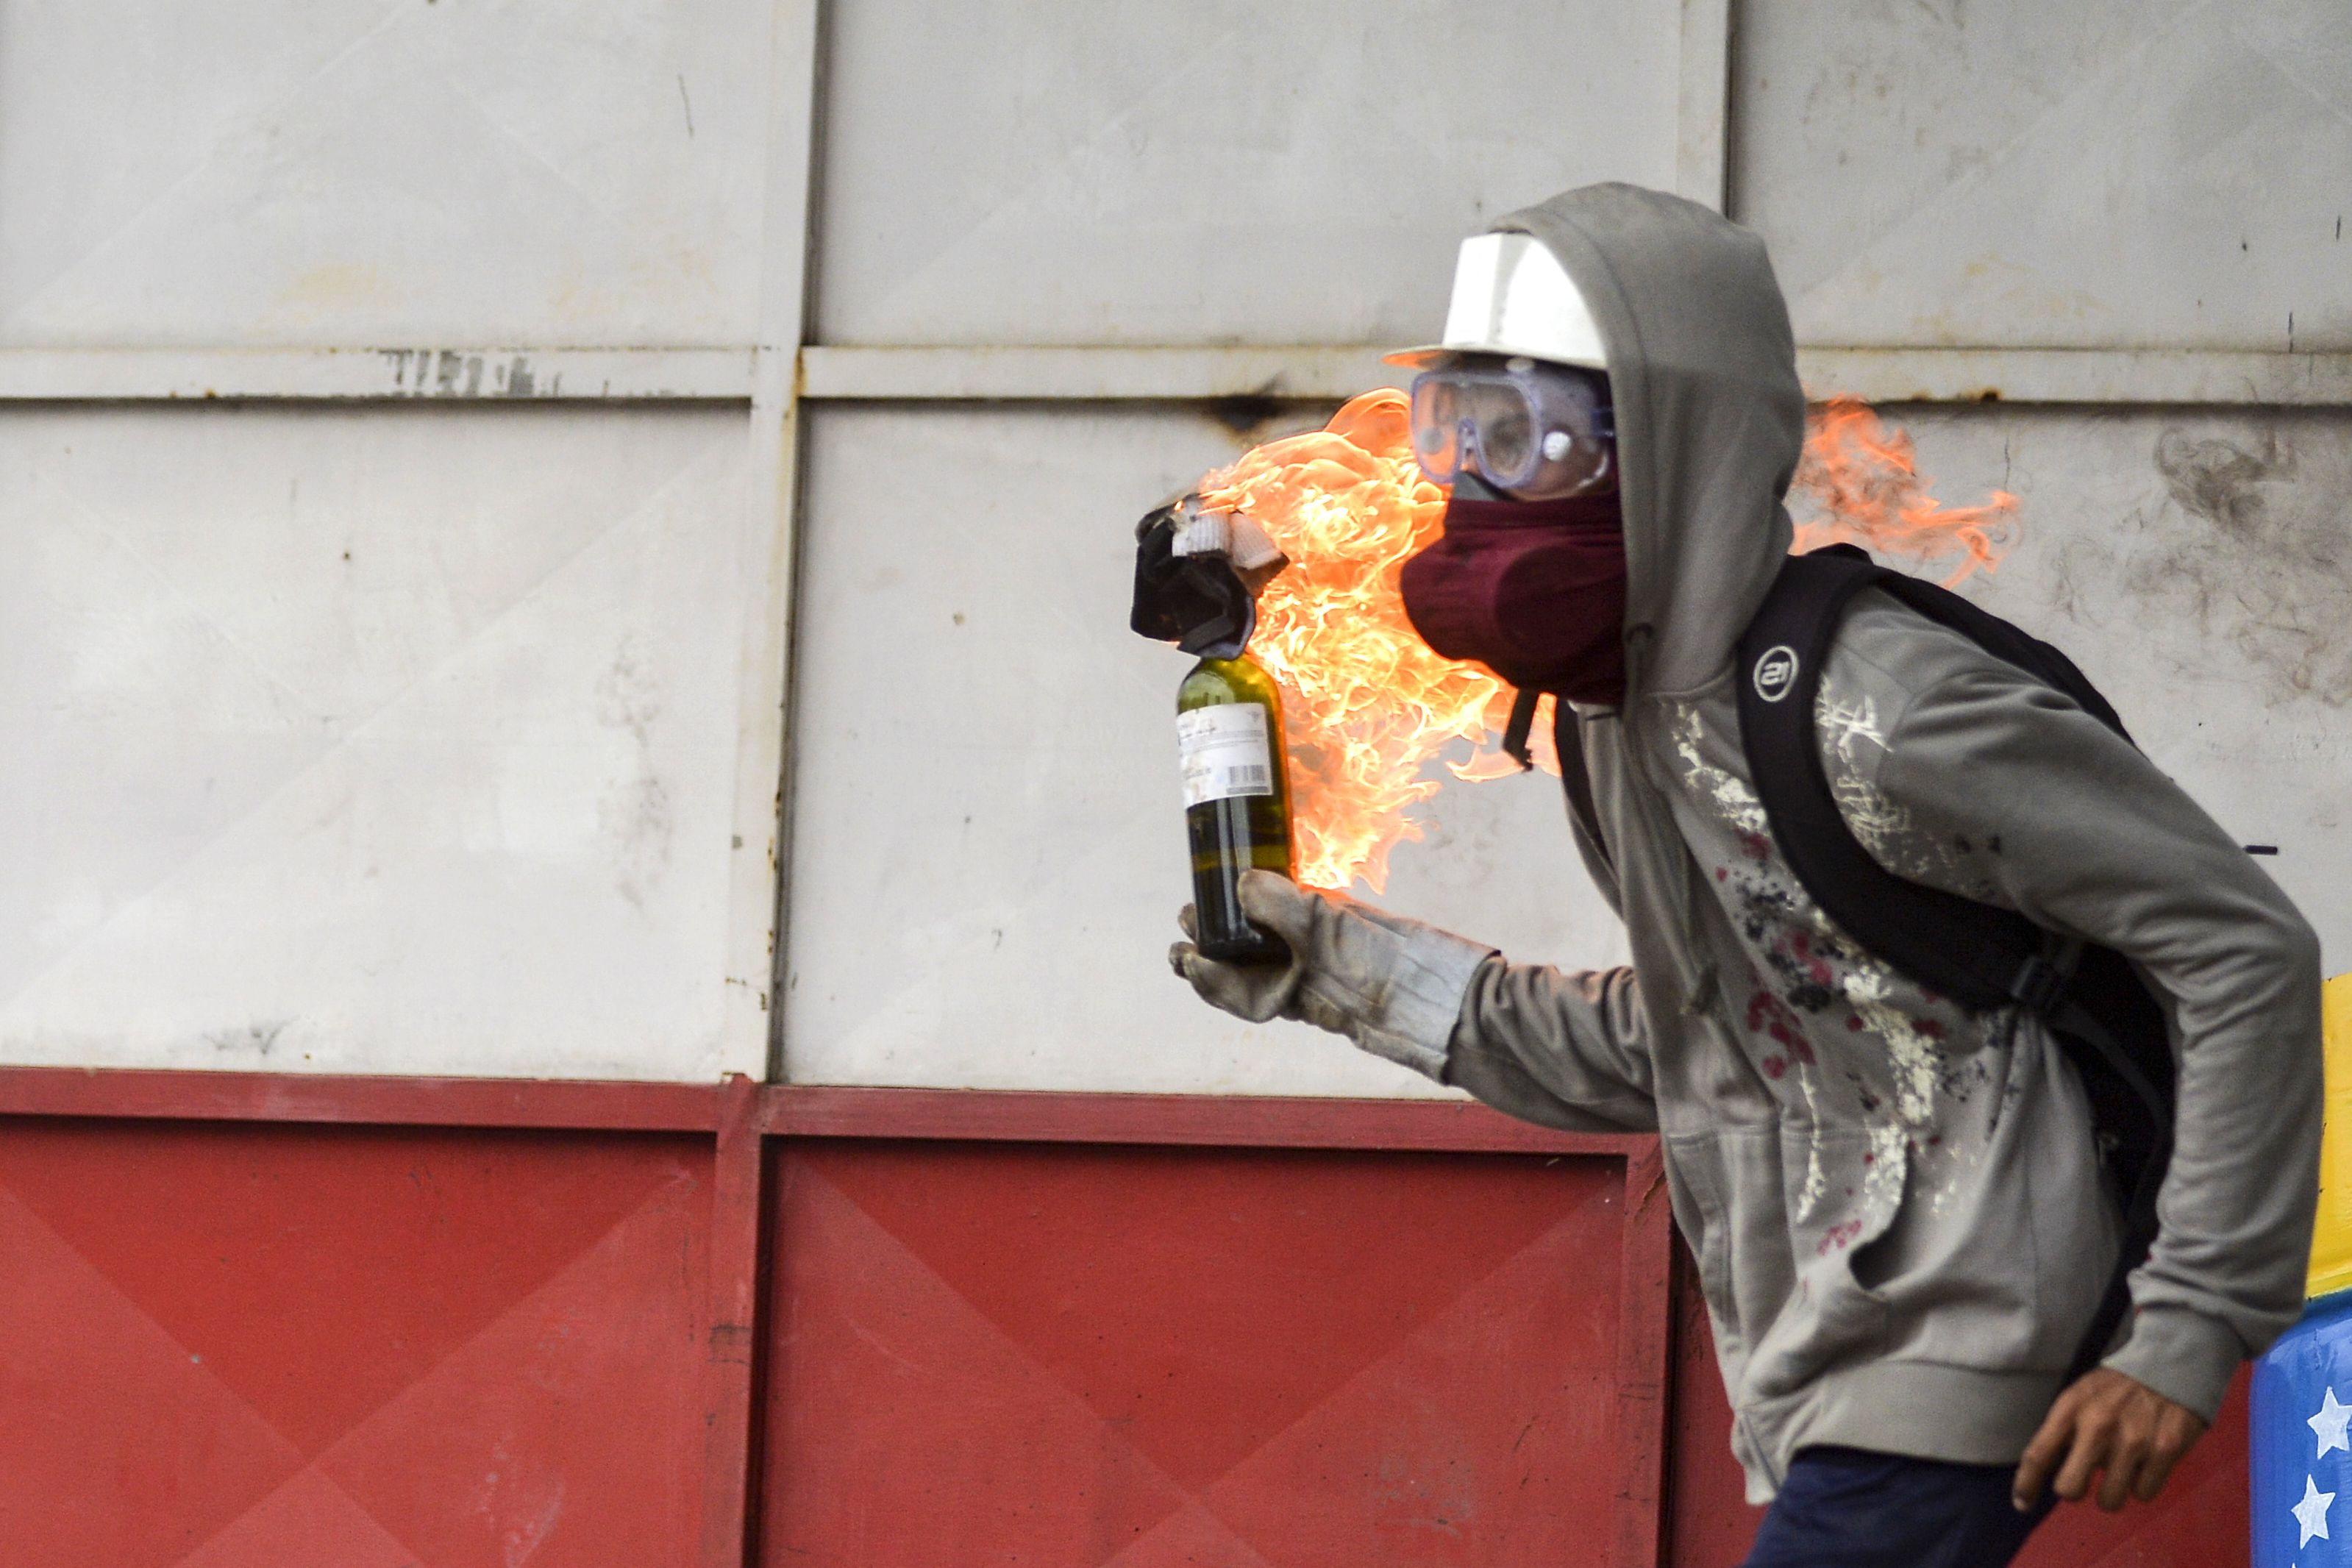 An opposition activist hurls a Molotov cocktail at riot police during clashes in Caracas on June 7, 2017.